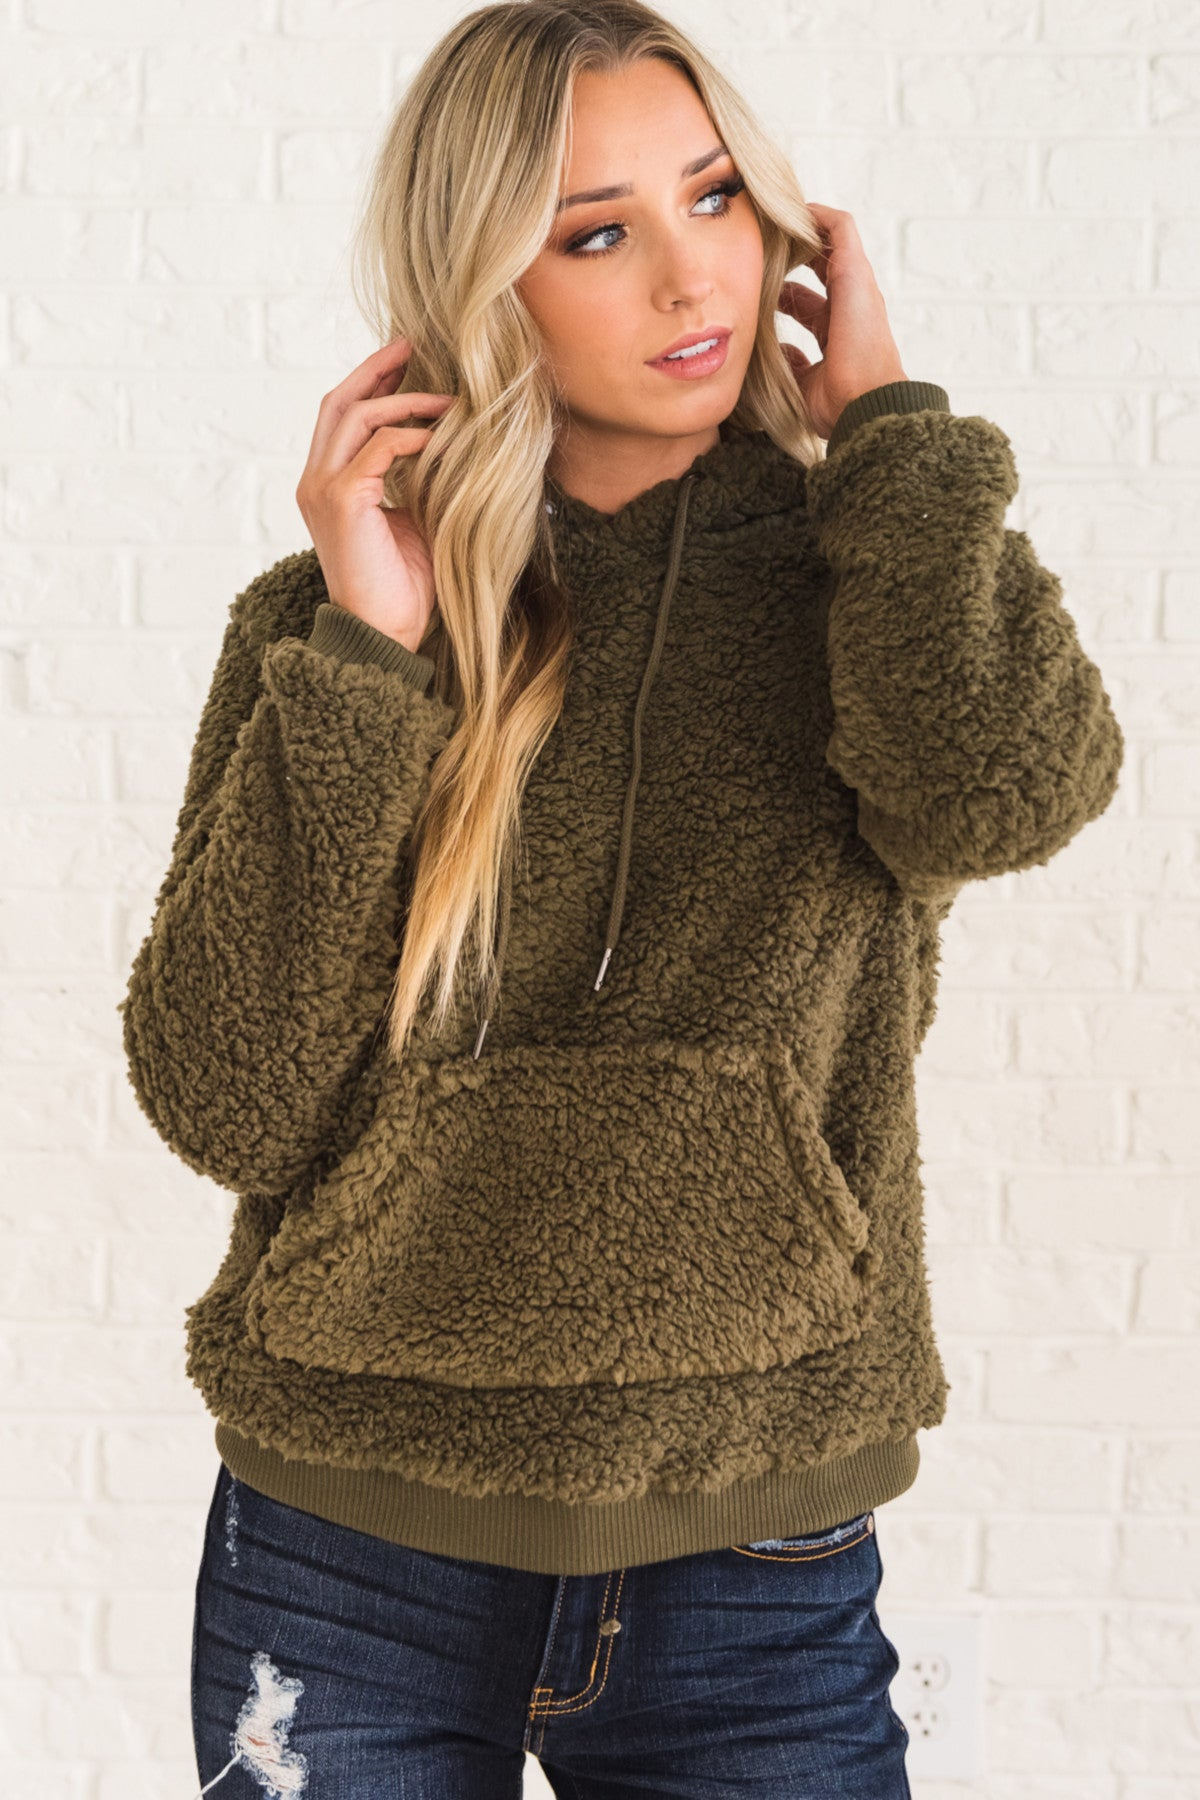 Olive Green Soft Cozy Warm Faux Fur Shearling Teddy Hoodie with Hood Drawstrings Kangaroo